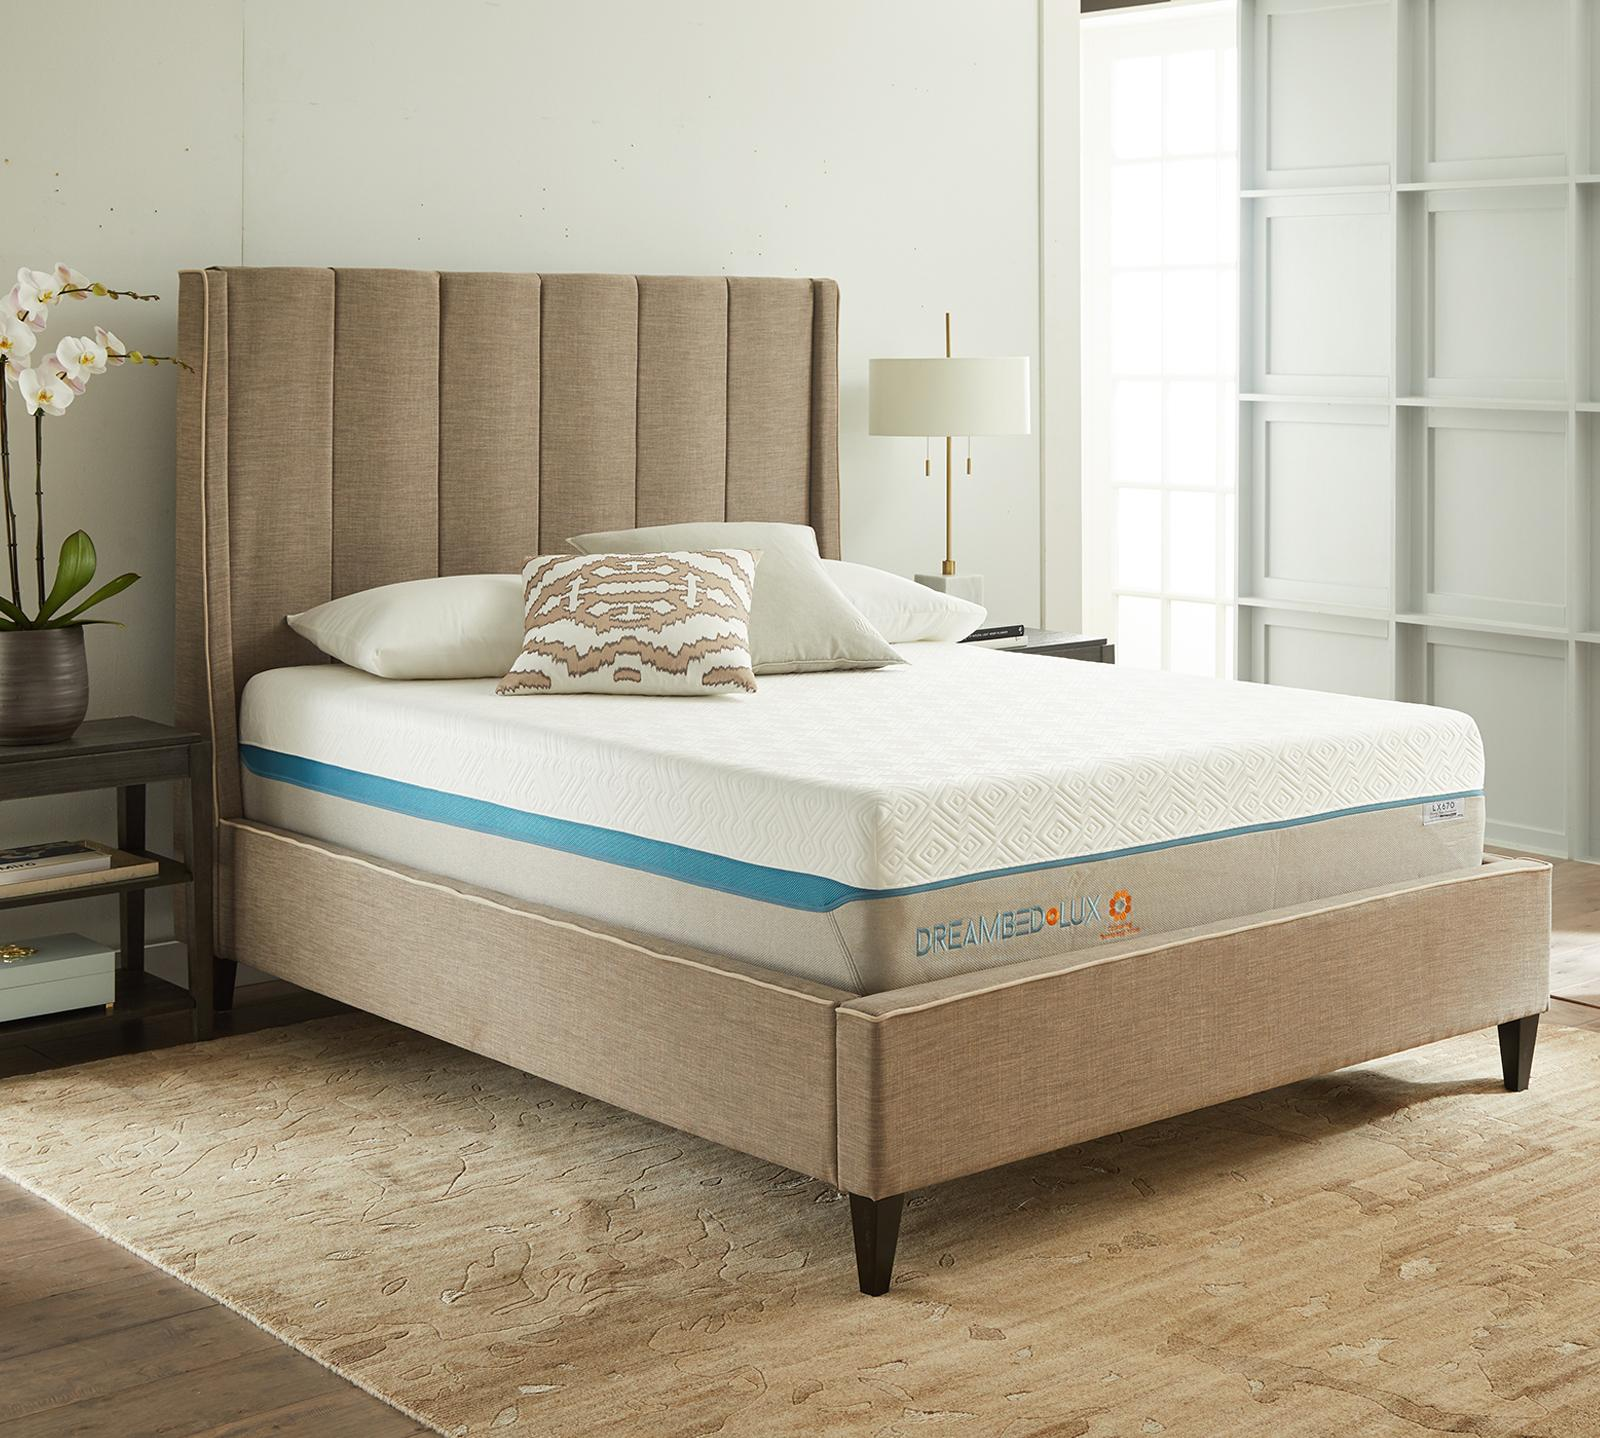 dream bed lux mattresses mattress firm